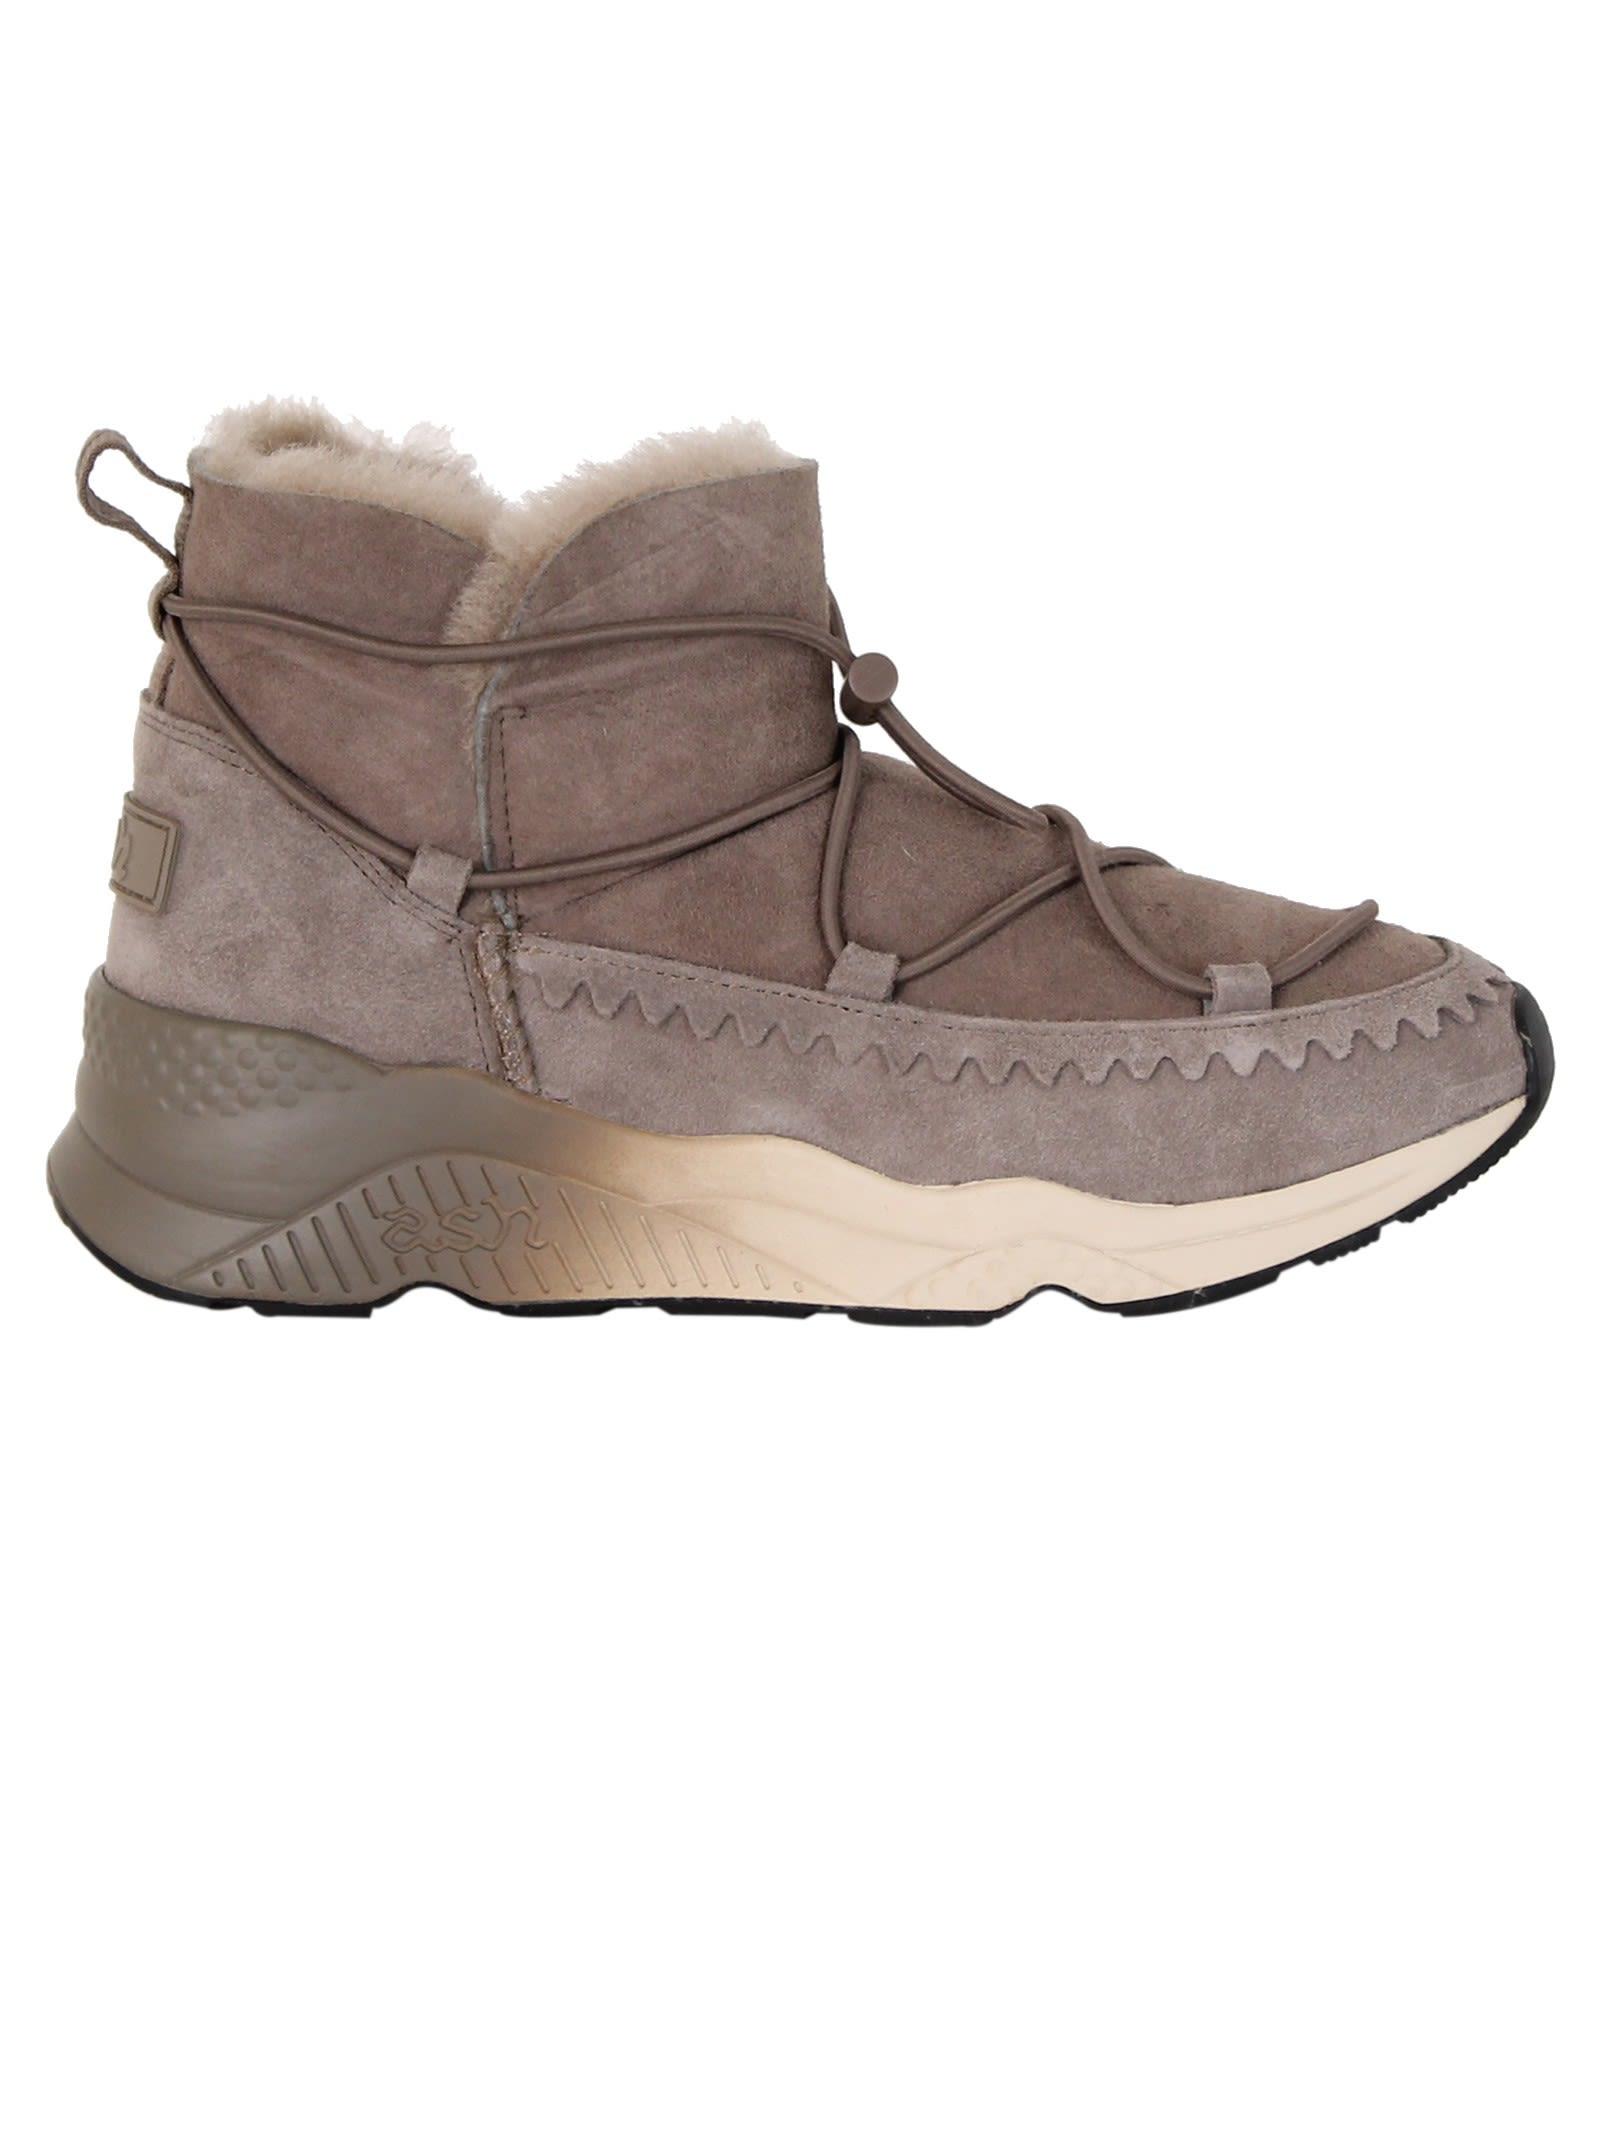 Ash Taupe Mitsouko Shearling Boots